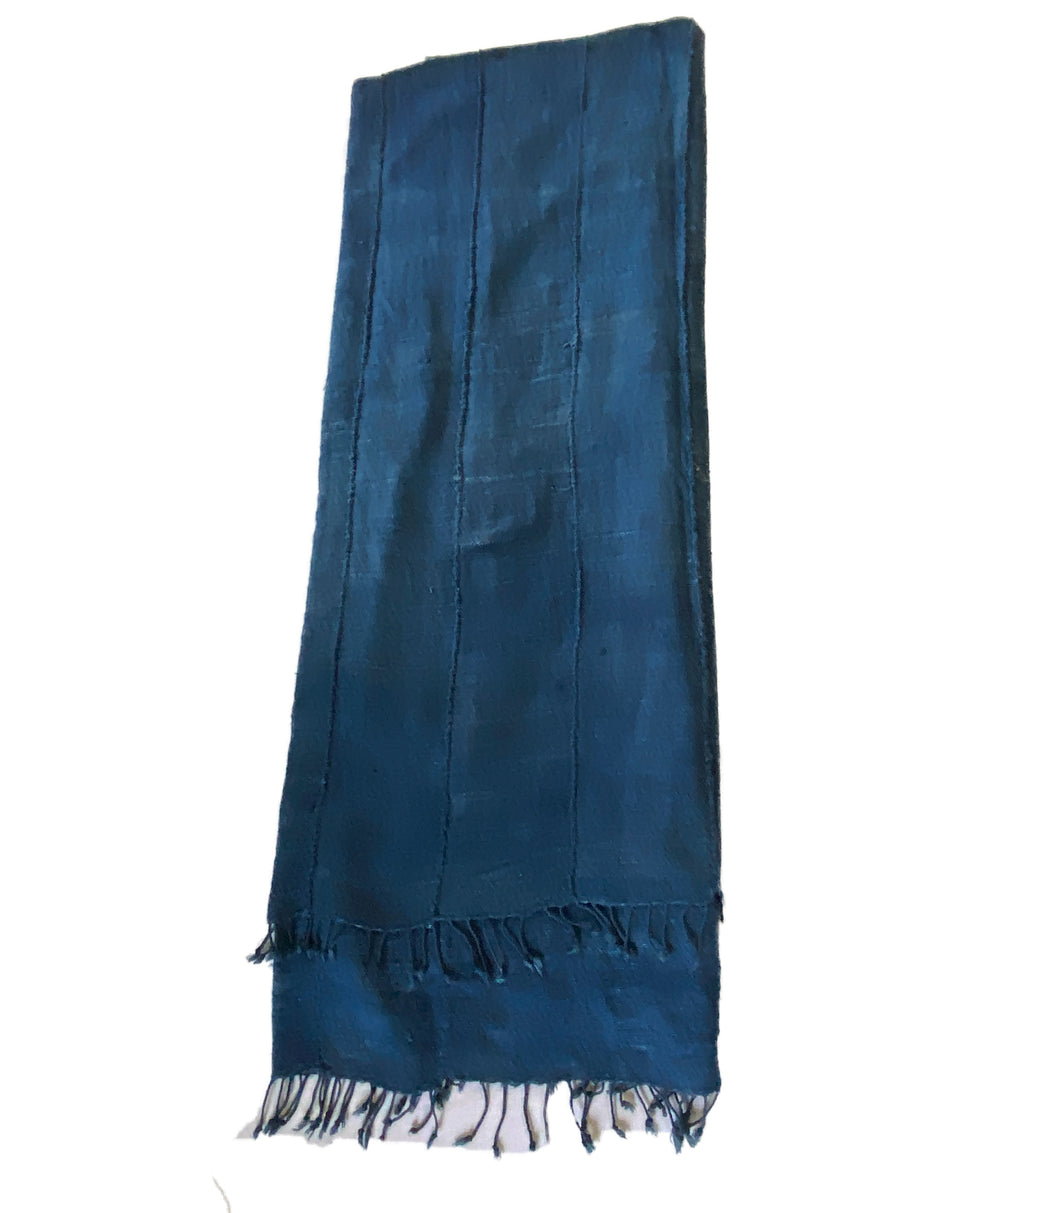 Plain Cotton Indigo Cloth - Mossi Tribe Burkina Faso